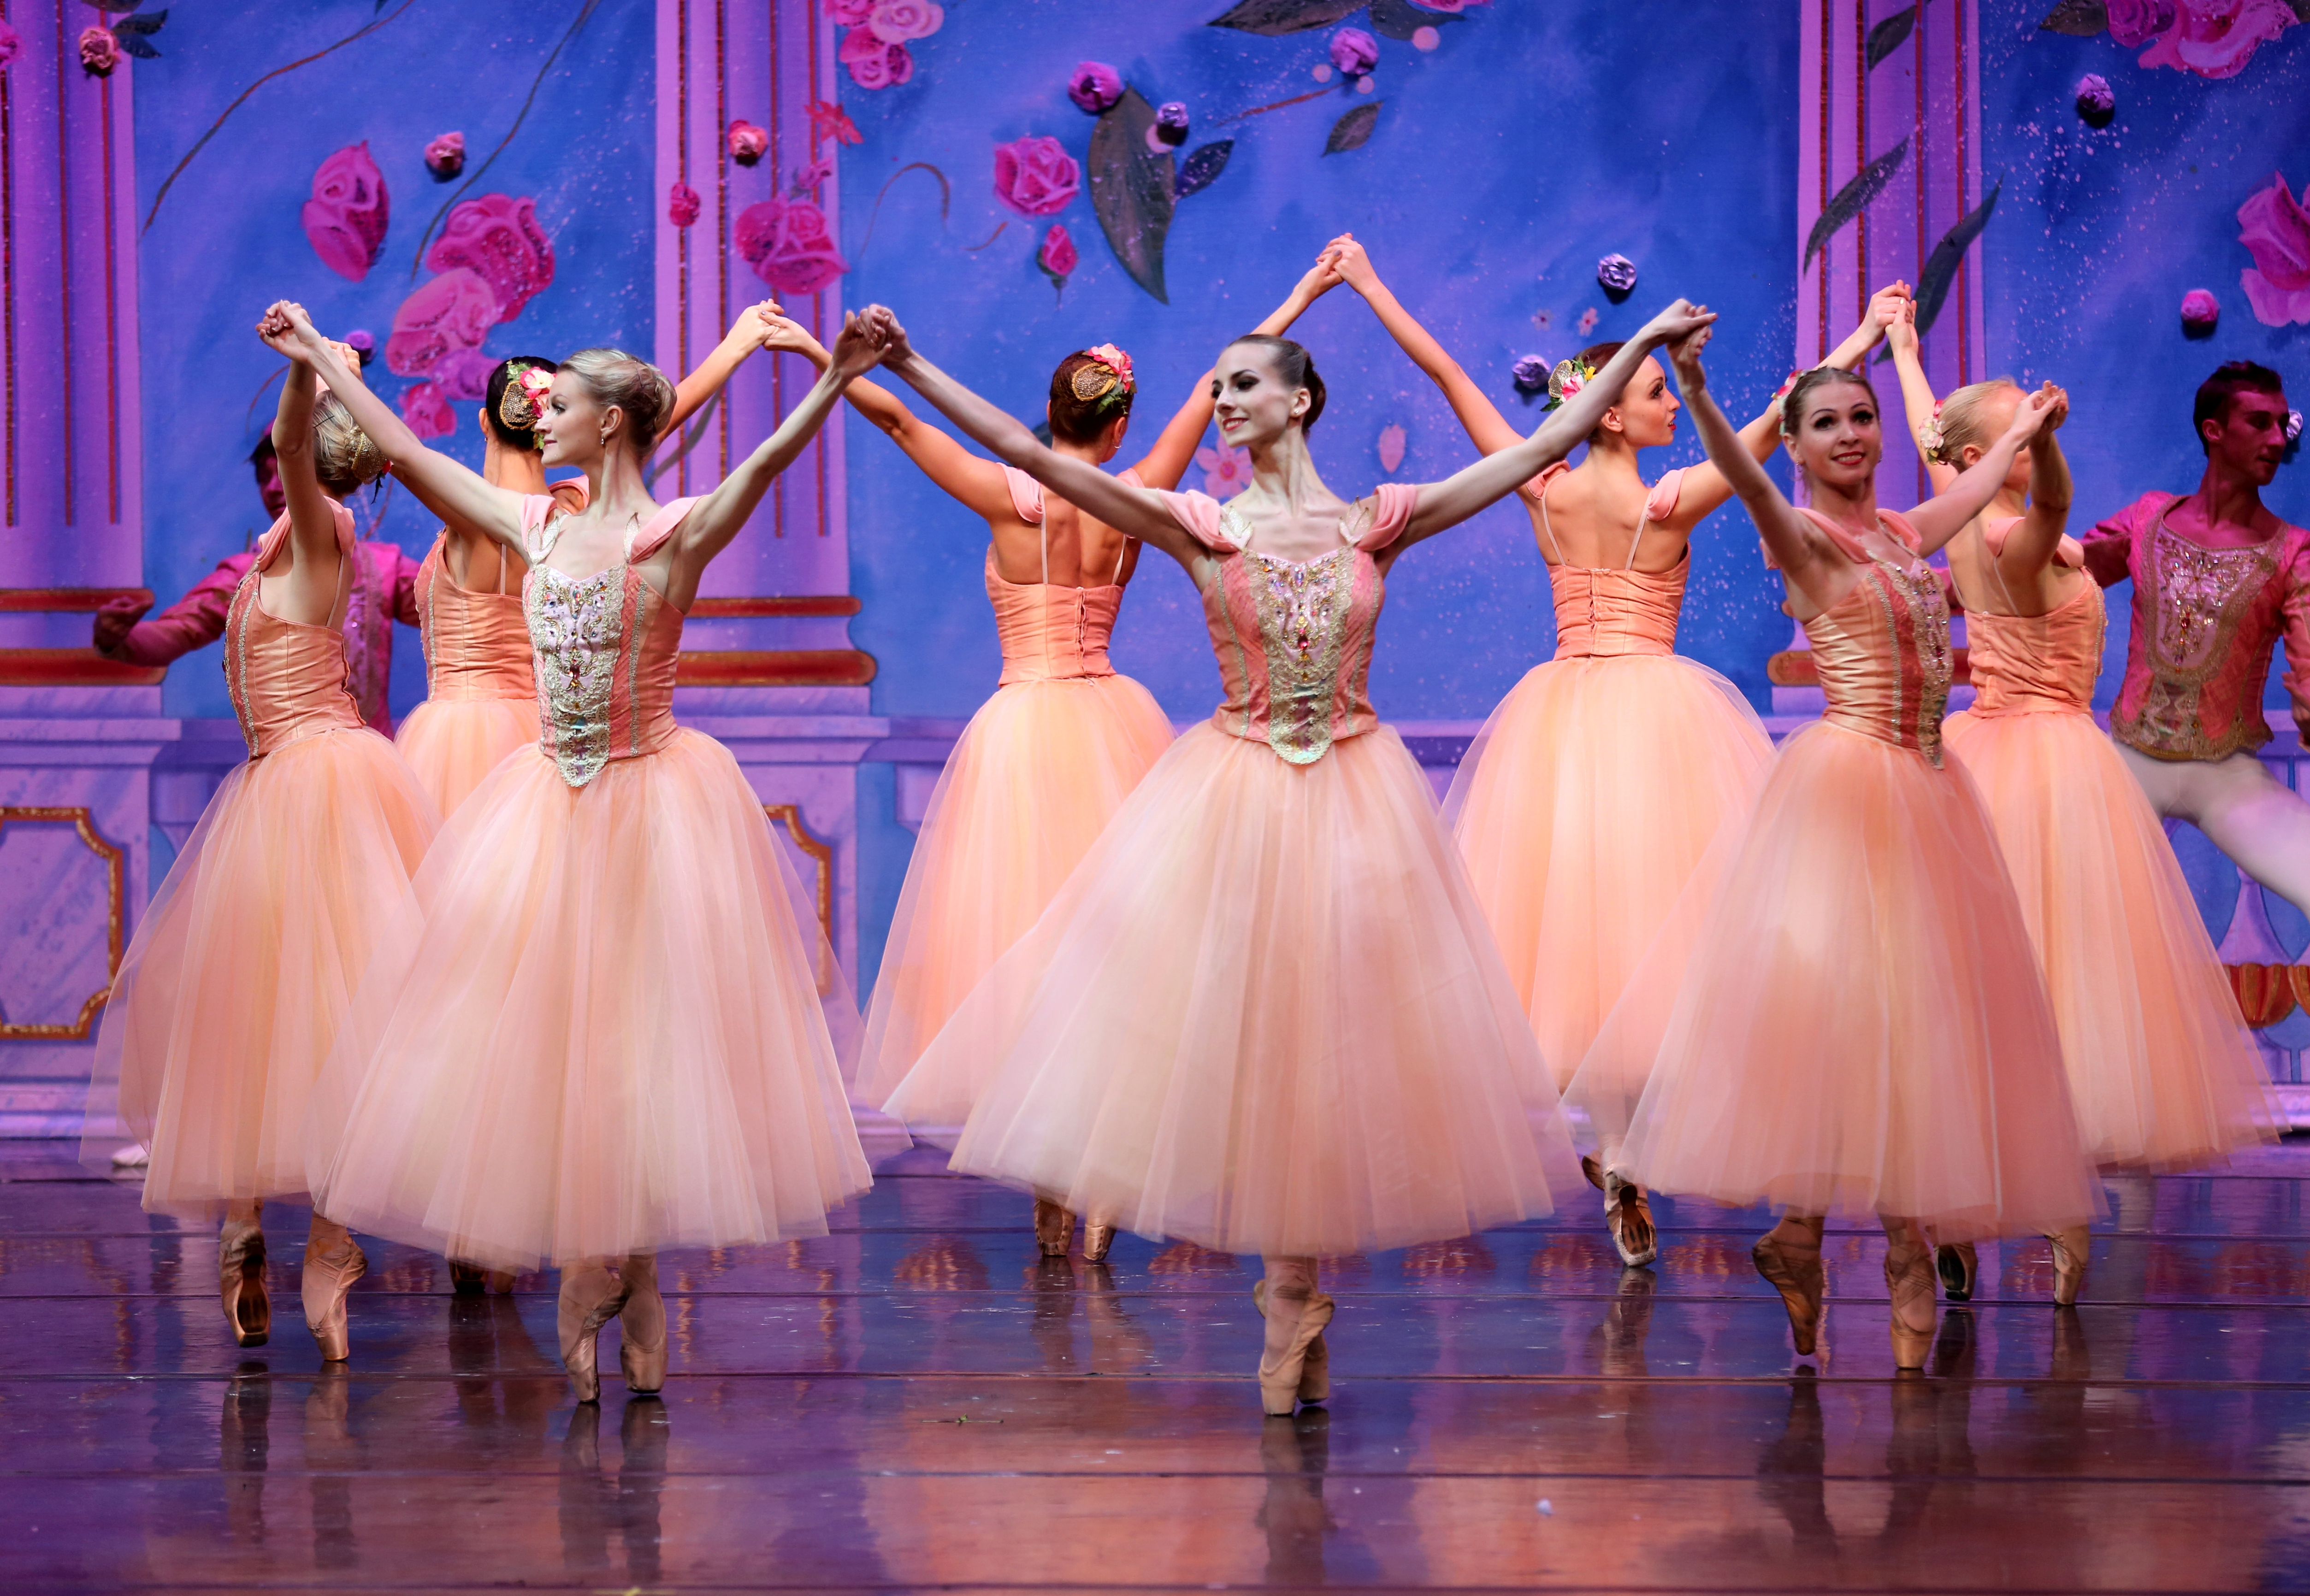 Stage Moscow Ballet s Great Russian Nutcracker THE HE SAID SHE SAID